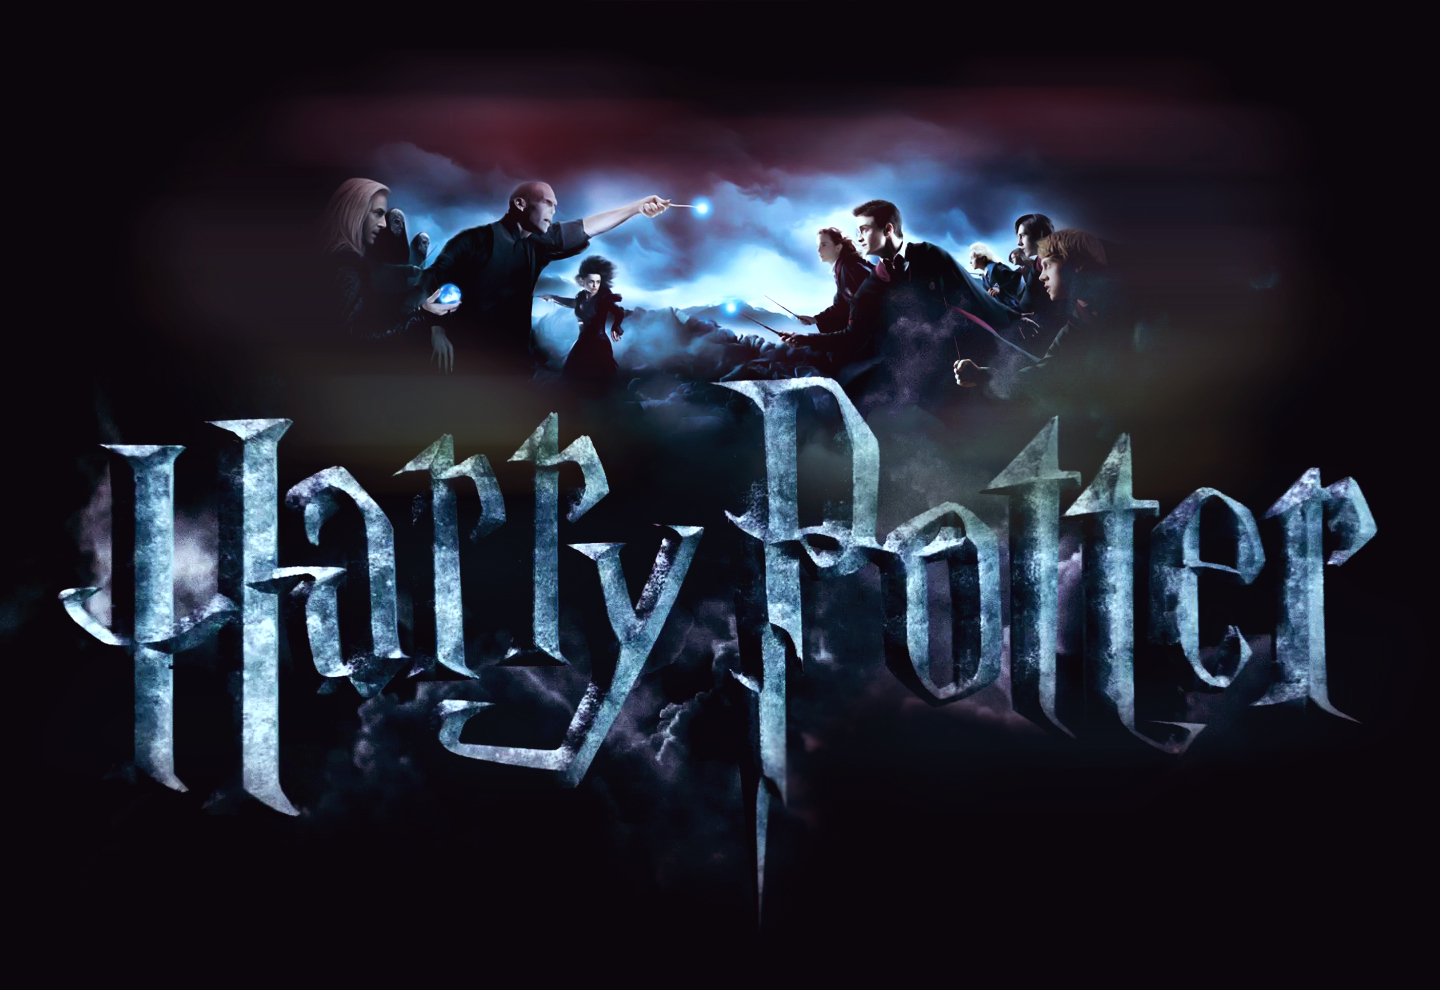 Harry Potter Wallpapers HD for Laptop  Free wallpaper download 1440x990